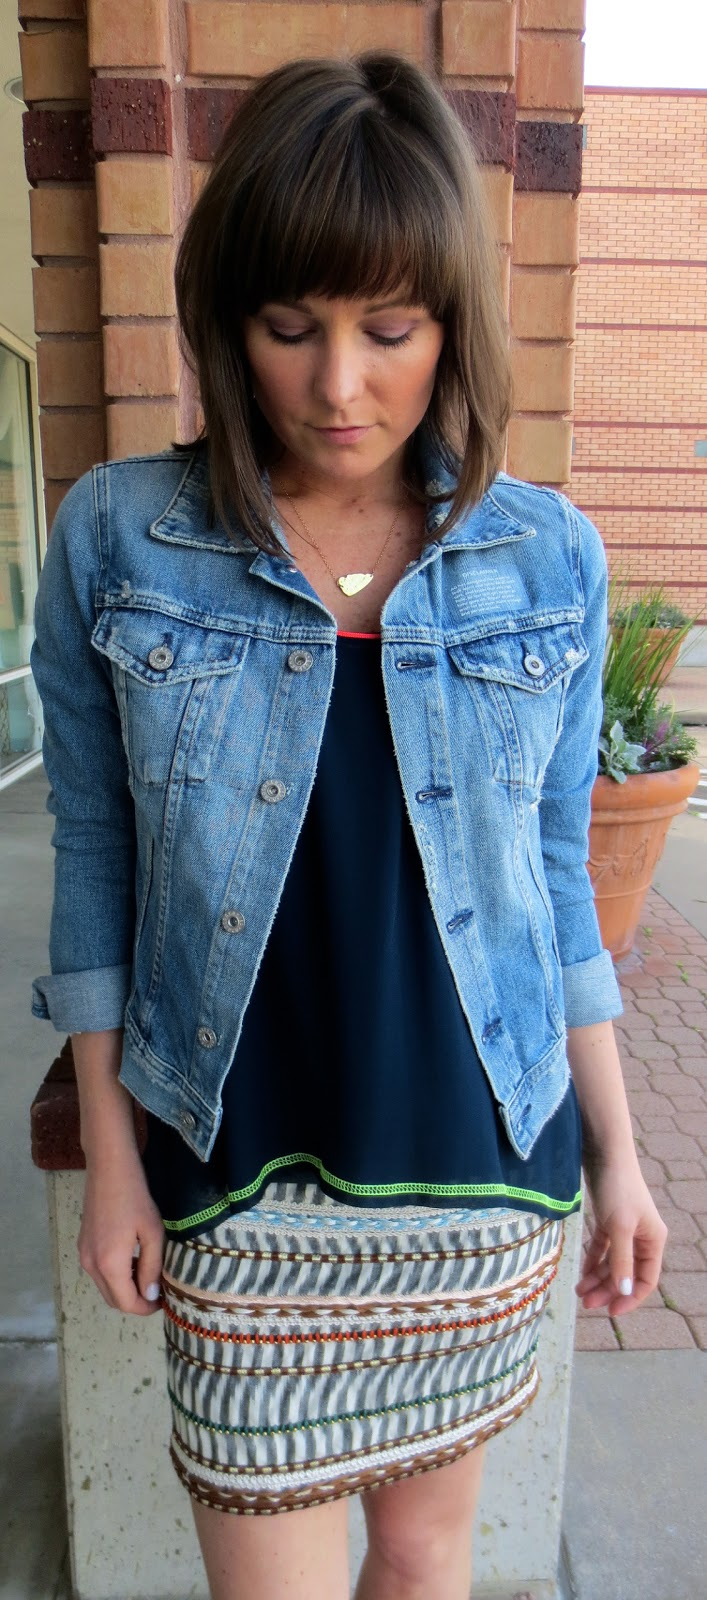 how to fix the cuff on a jean jacket